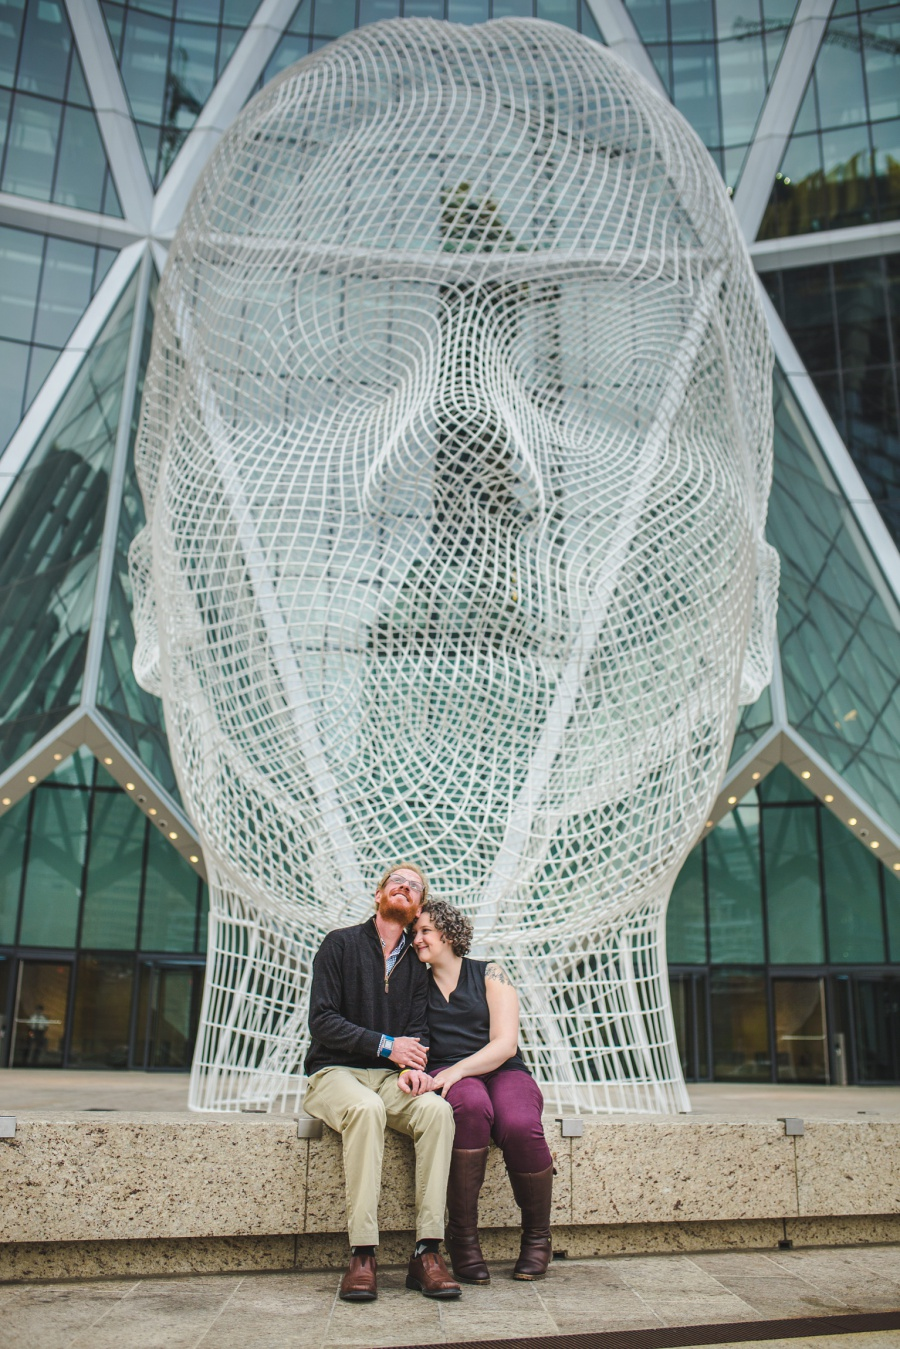 calgary engagement photos with dogs downtown autumn fall corgi wonderland the bow